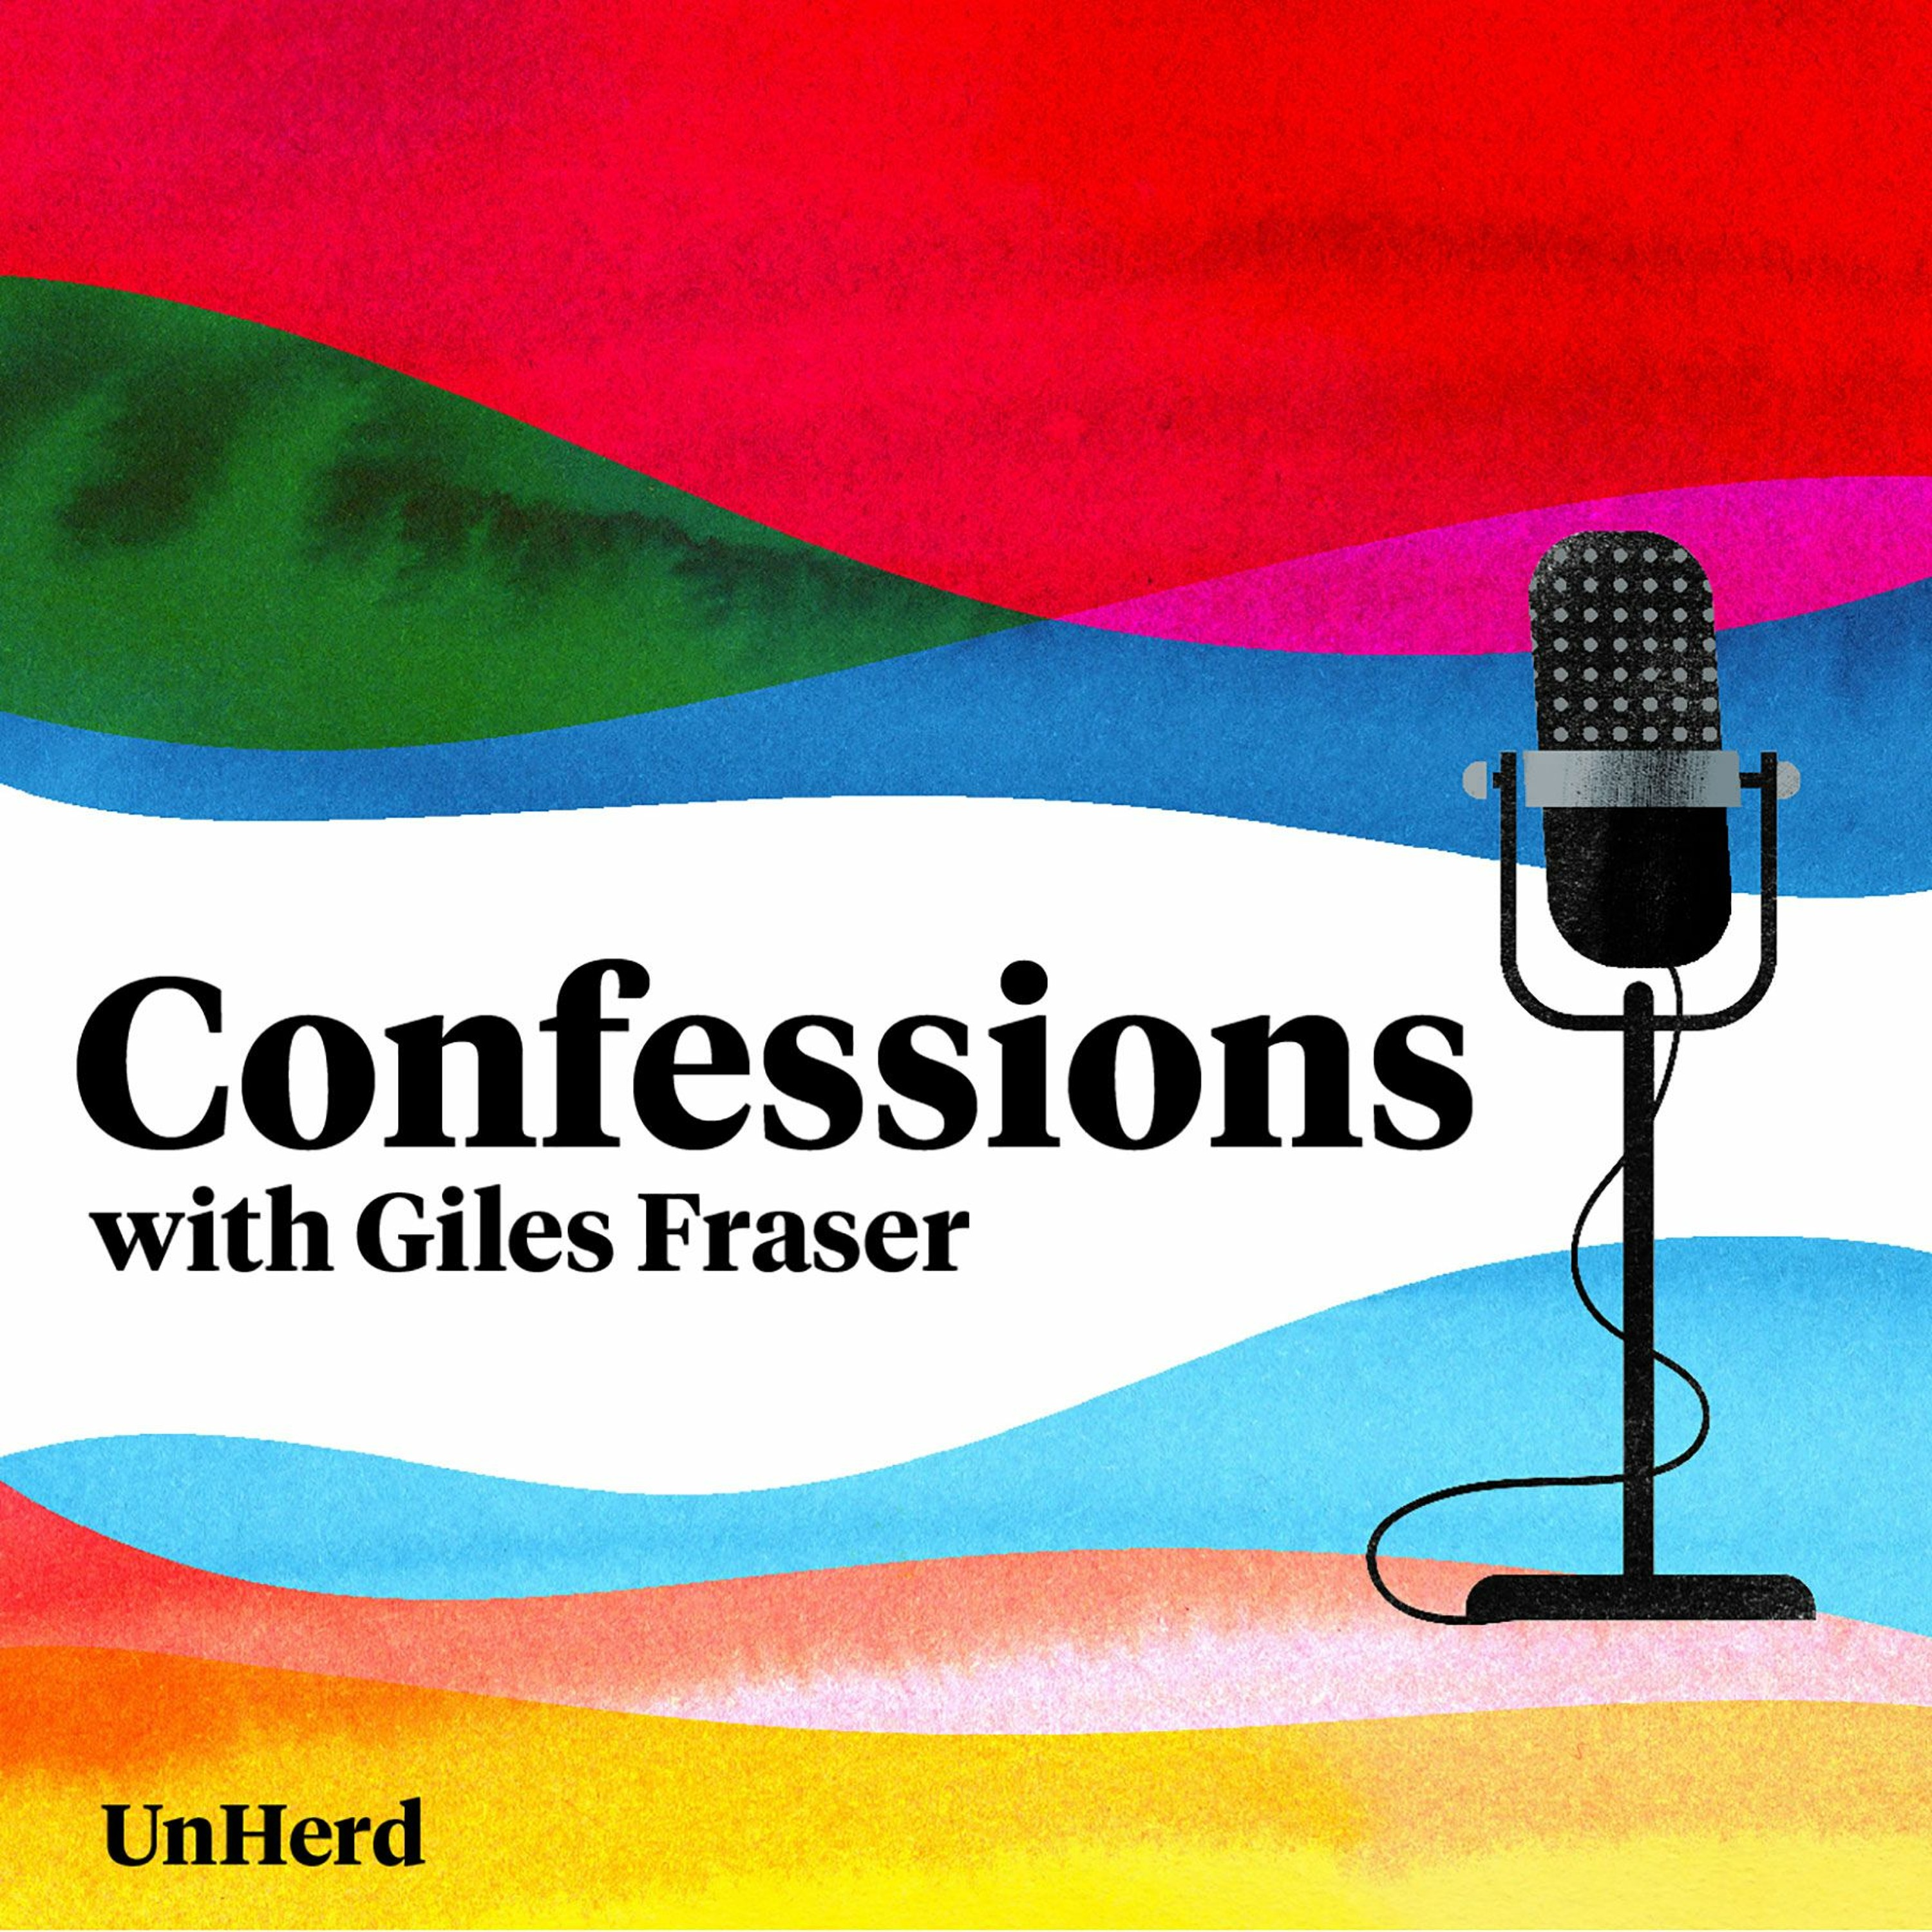 Richard Layard's Confessions — History, happiness and mental health